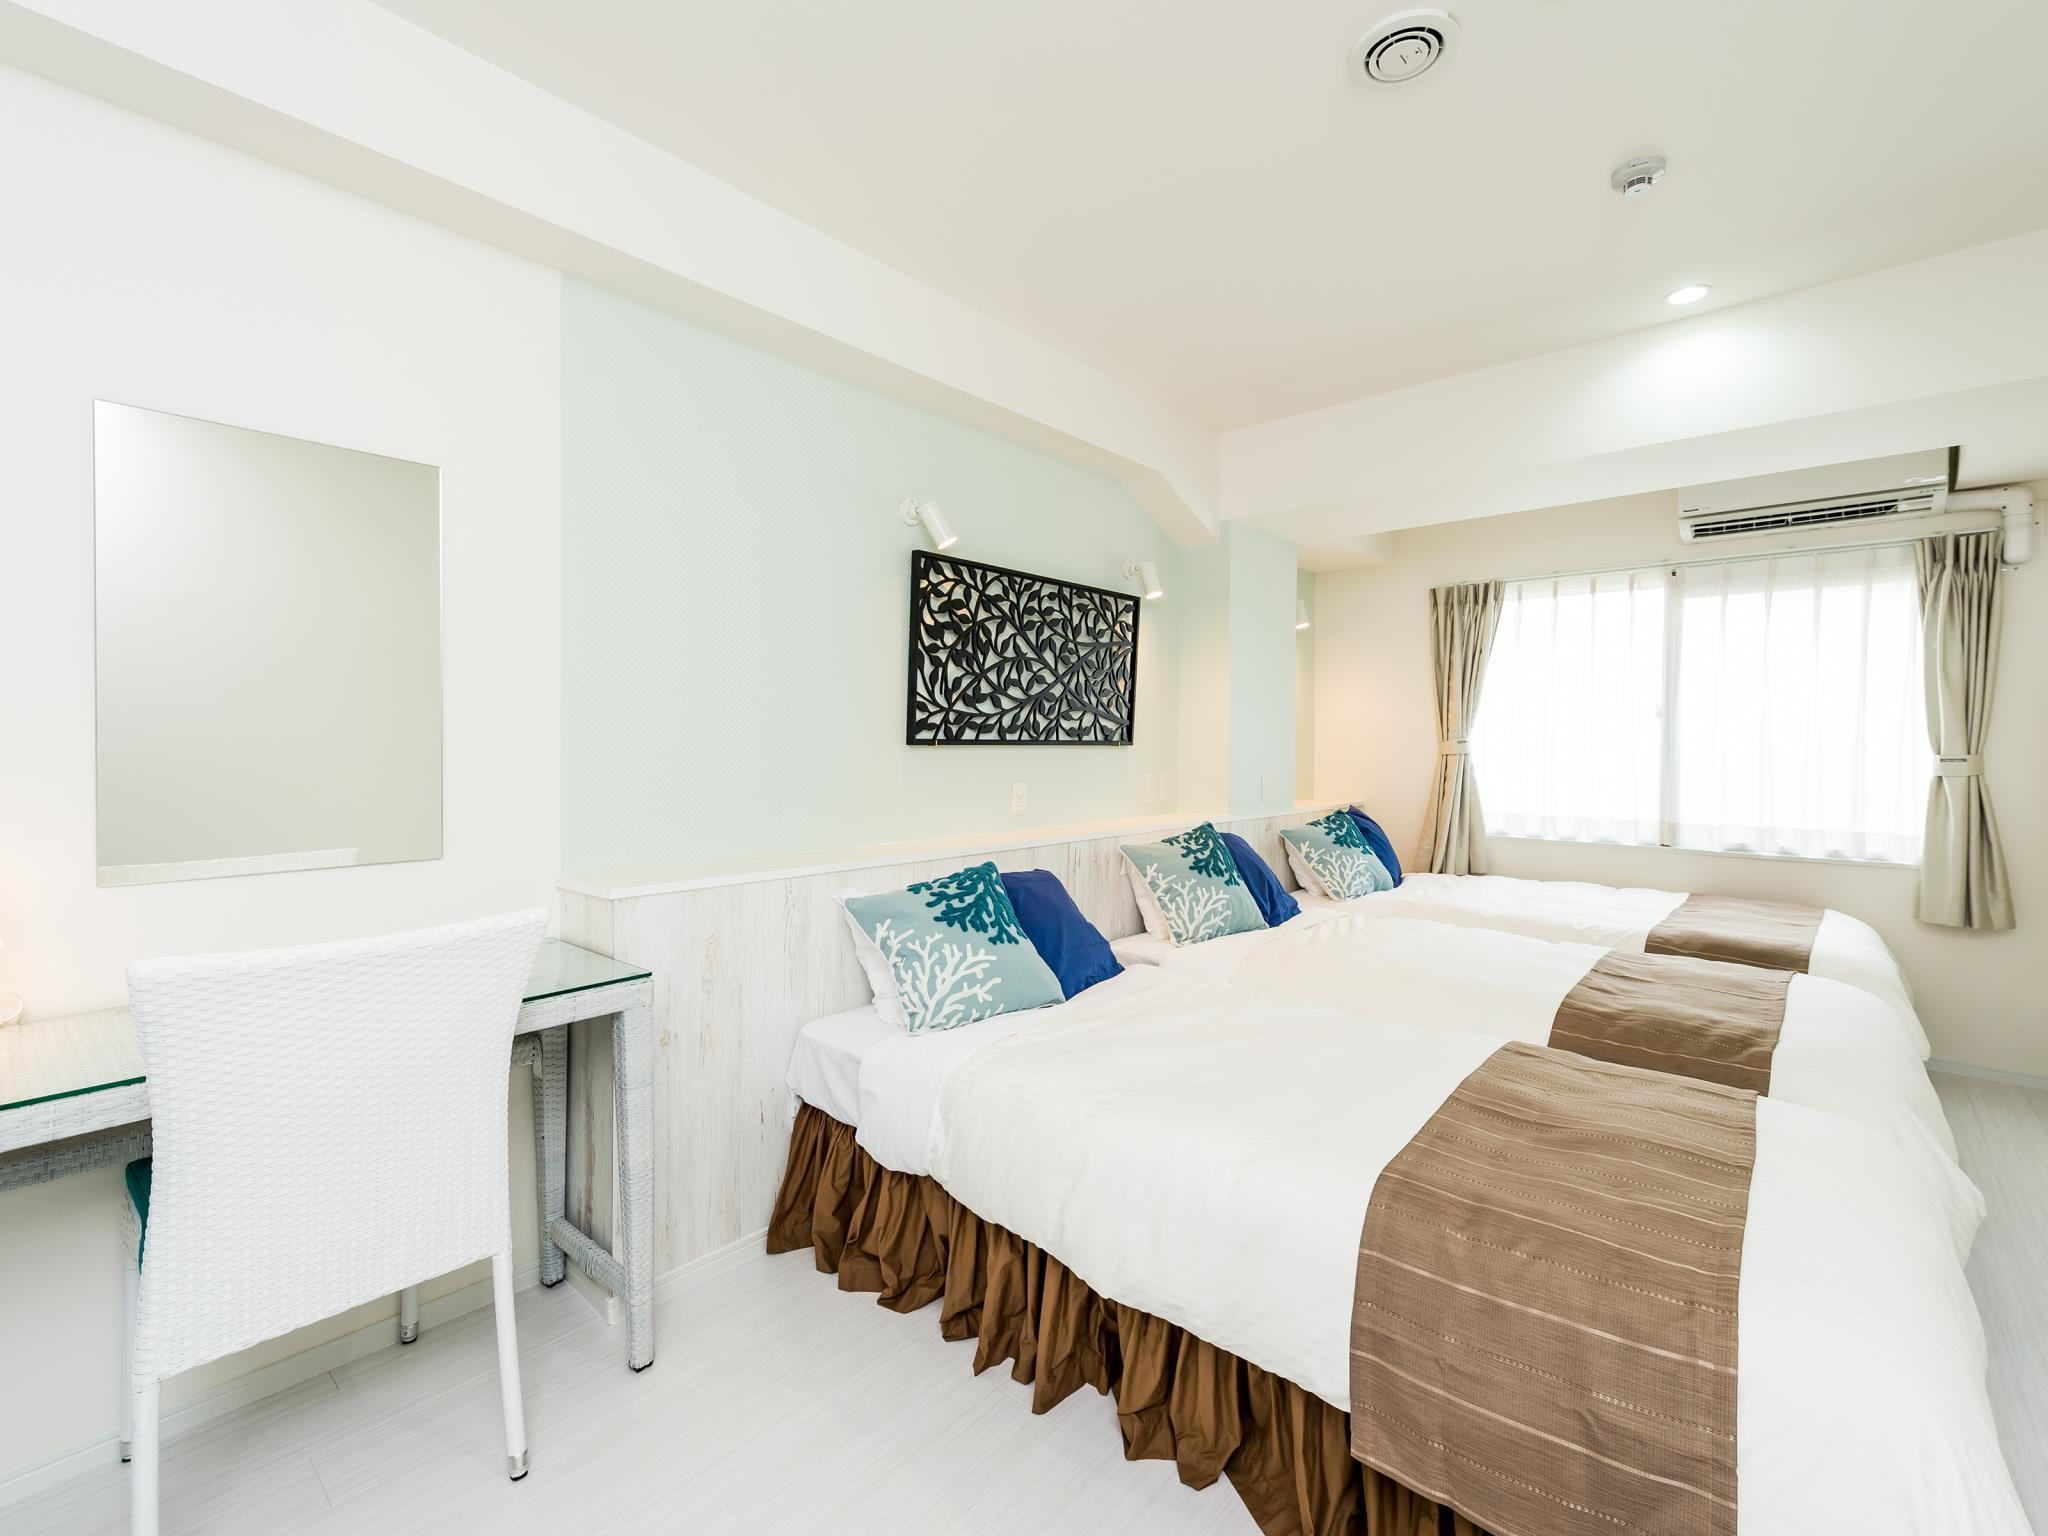 標準三人房 - 有小廚房 (Standard Triple Room with Kitchenette)